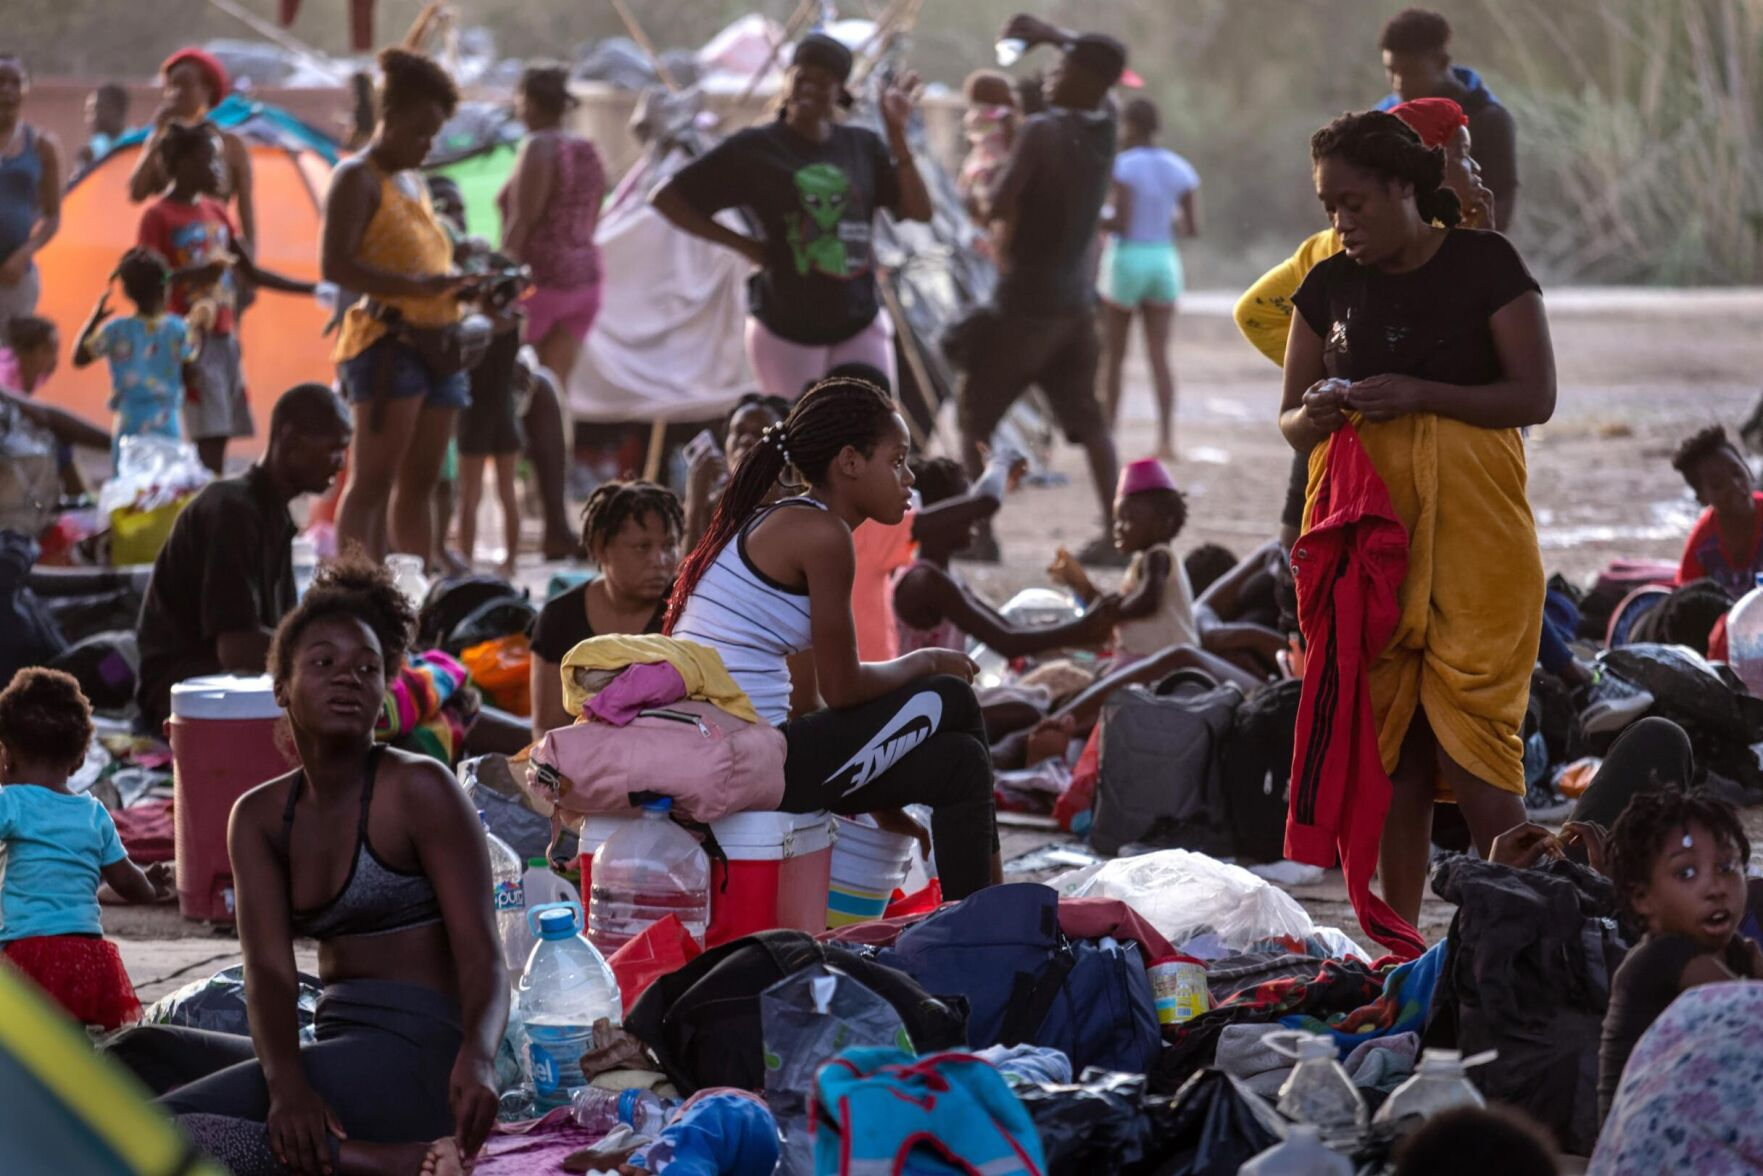 DHS releasing some Haitians into US despite claims they would be immediately expelled 6